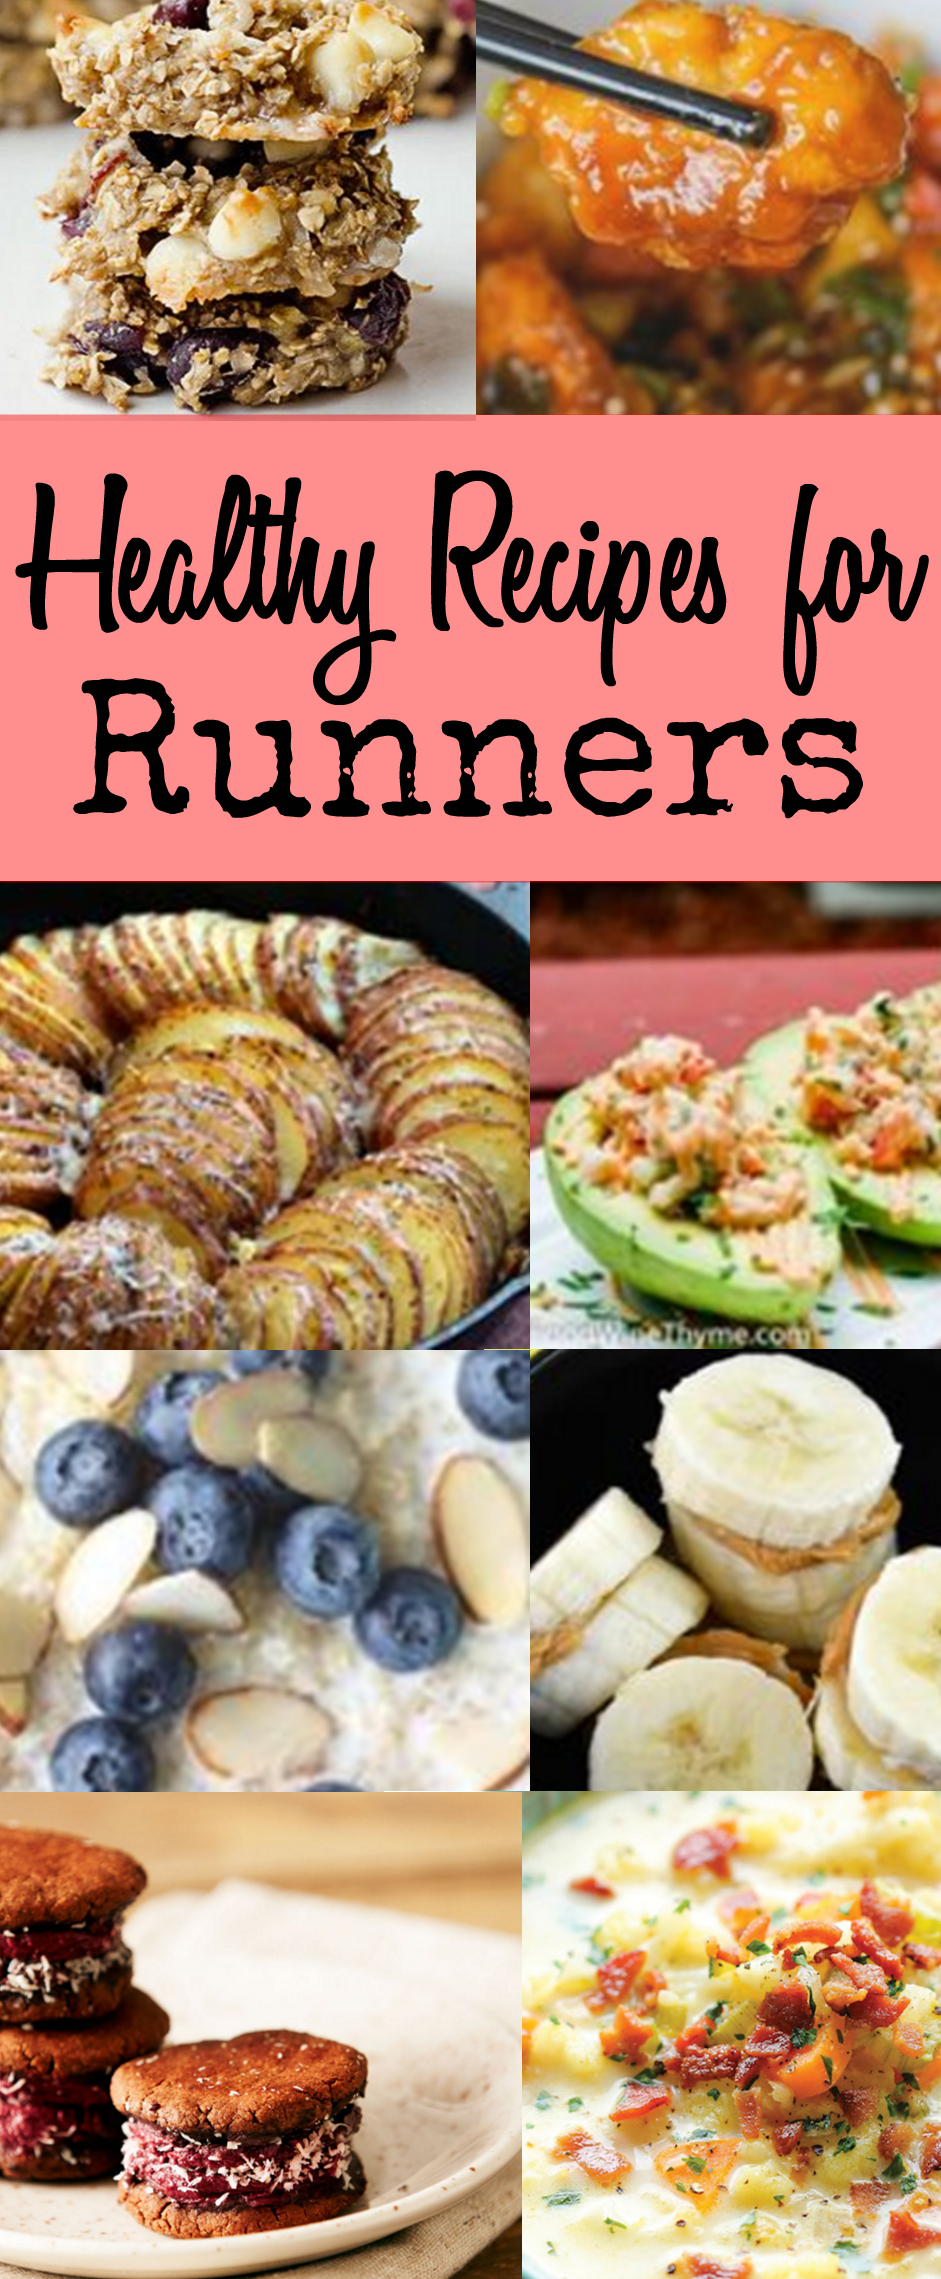 Healthy Food for Runners